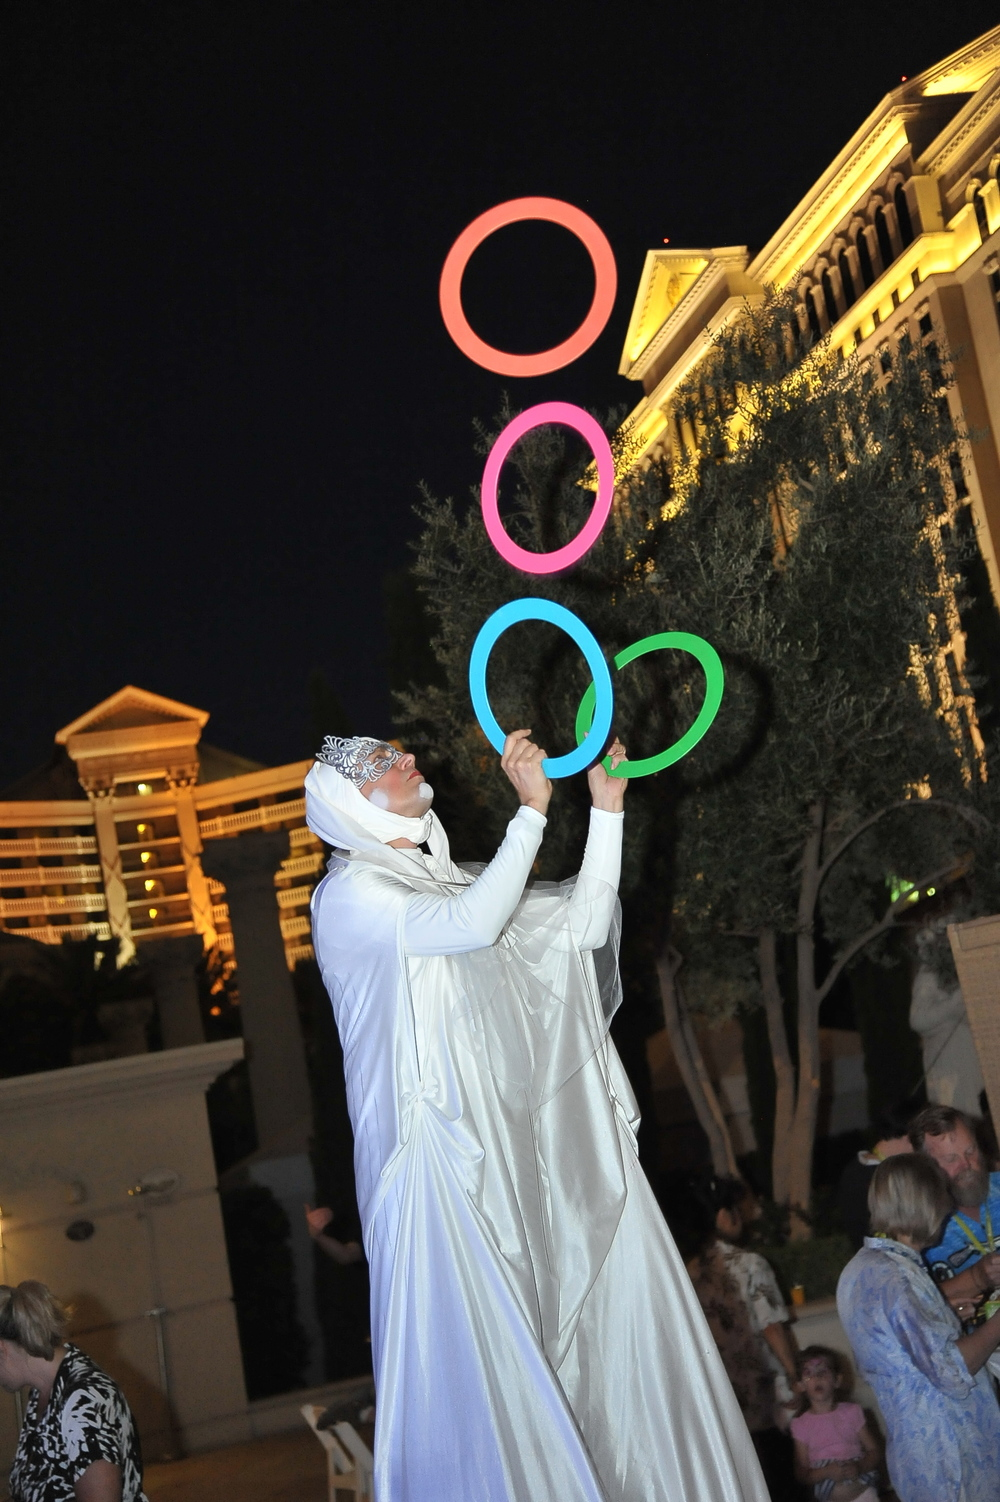 Jugglers are just one fun addition to make your party memorable and fun